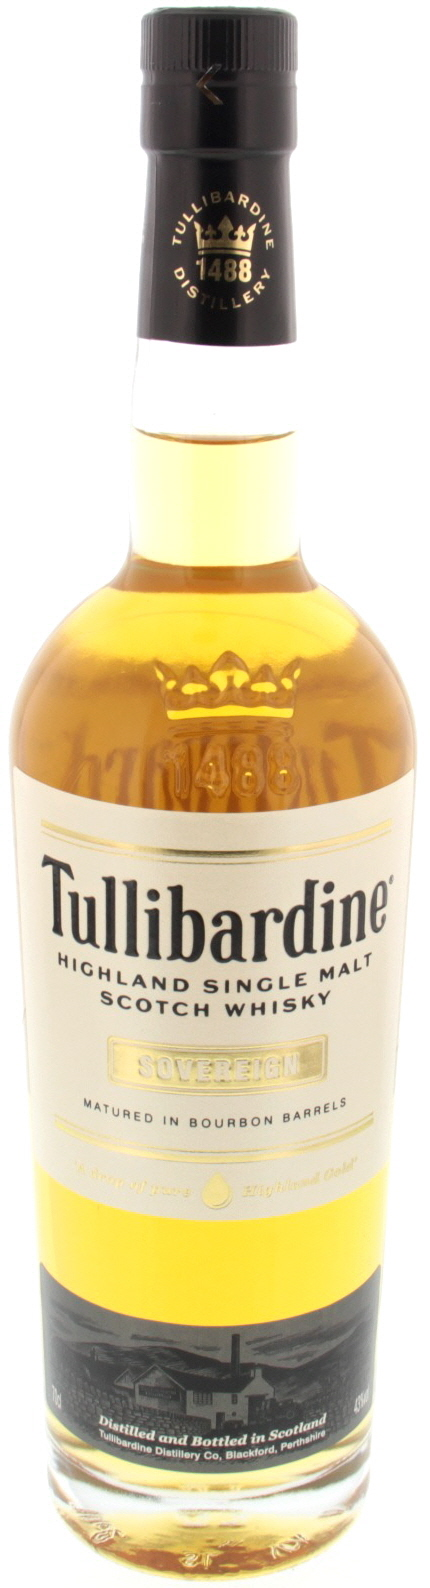 Tullibardine Single Malt Scotch Whisky Sovereign